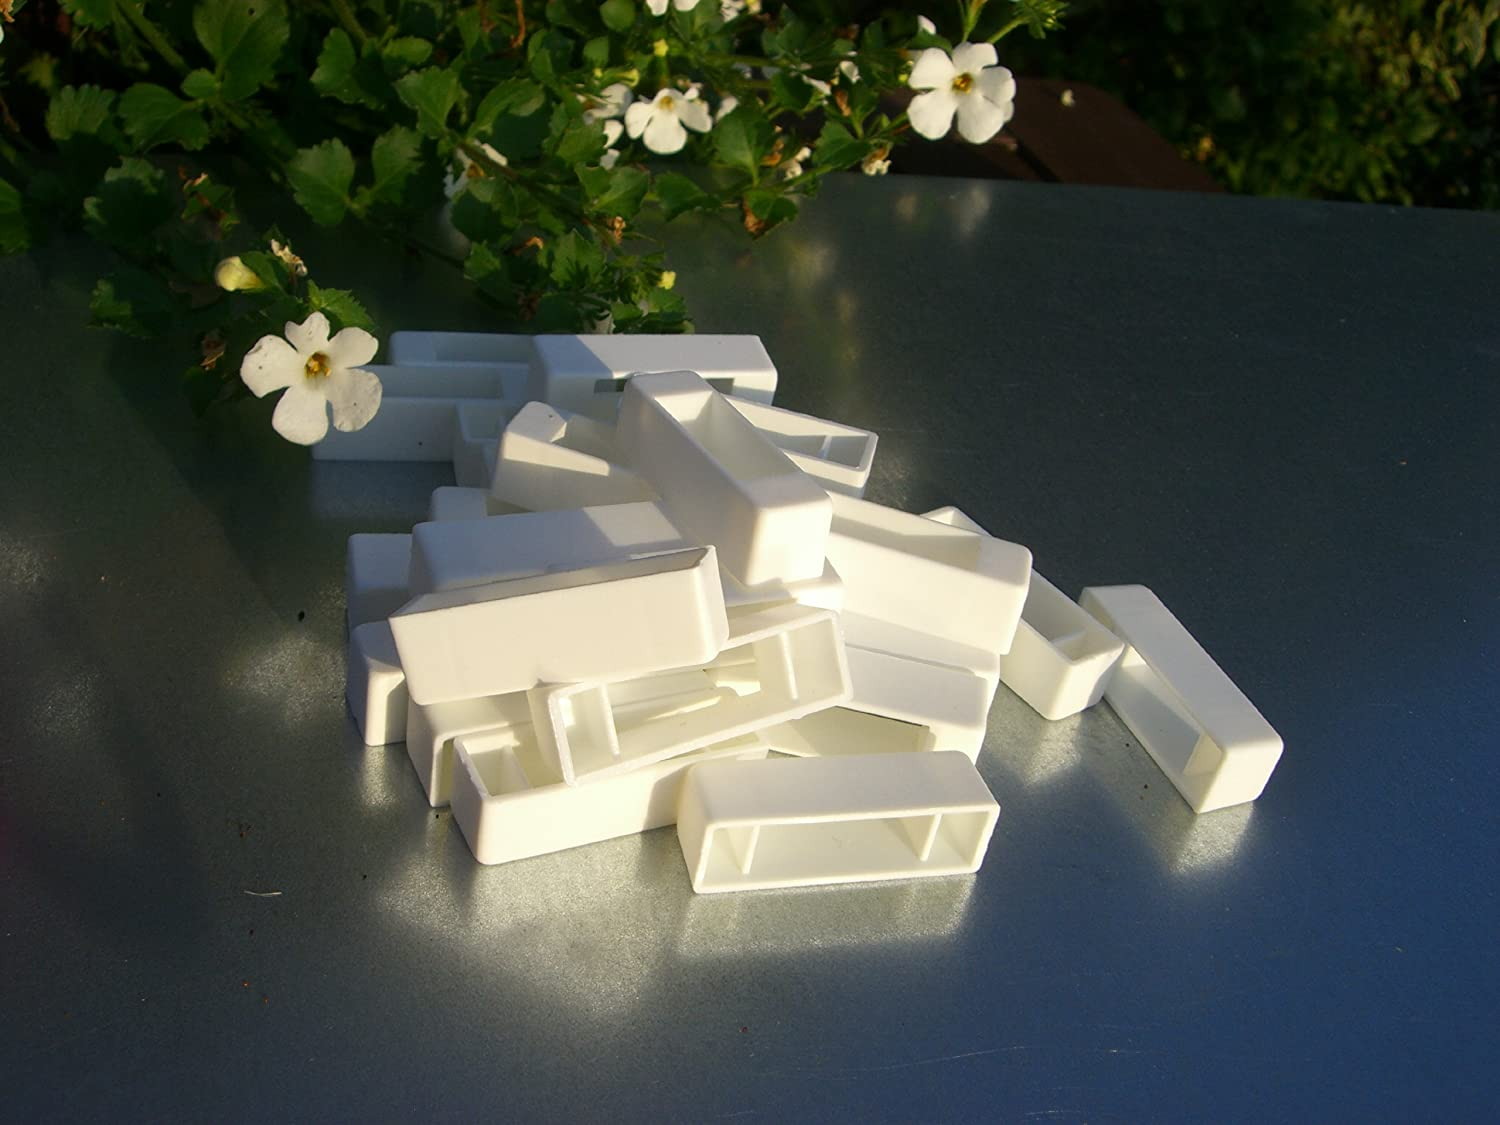 Beekeepers 100 Narrow bee hive plastic frame ends / spacers simonthebeekeeper